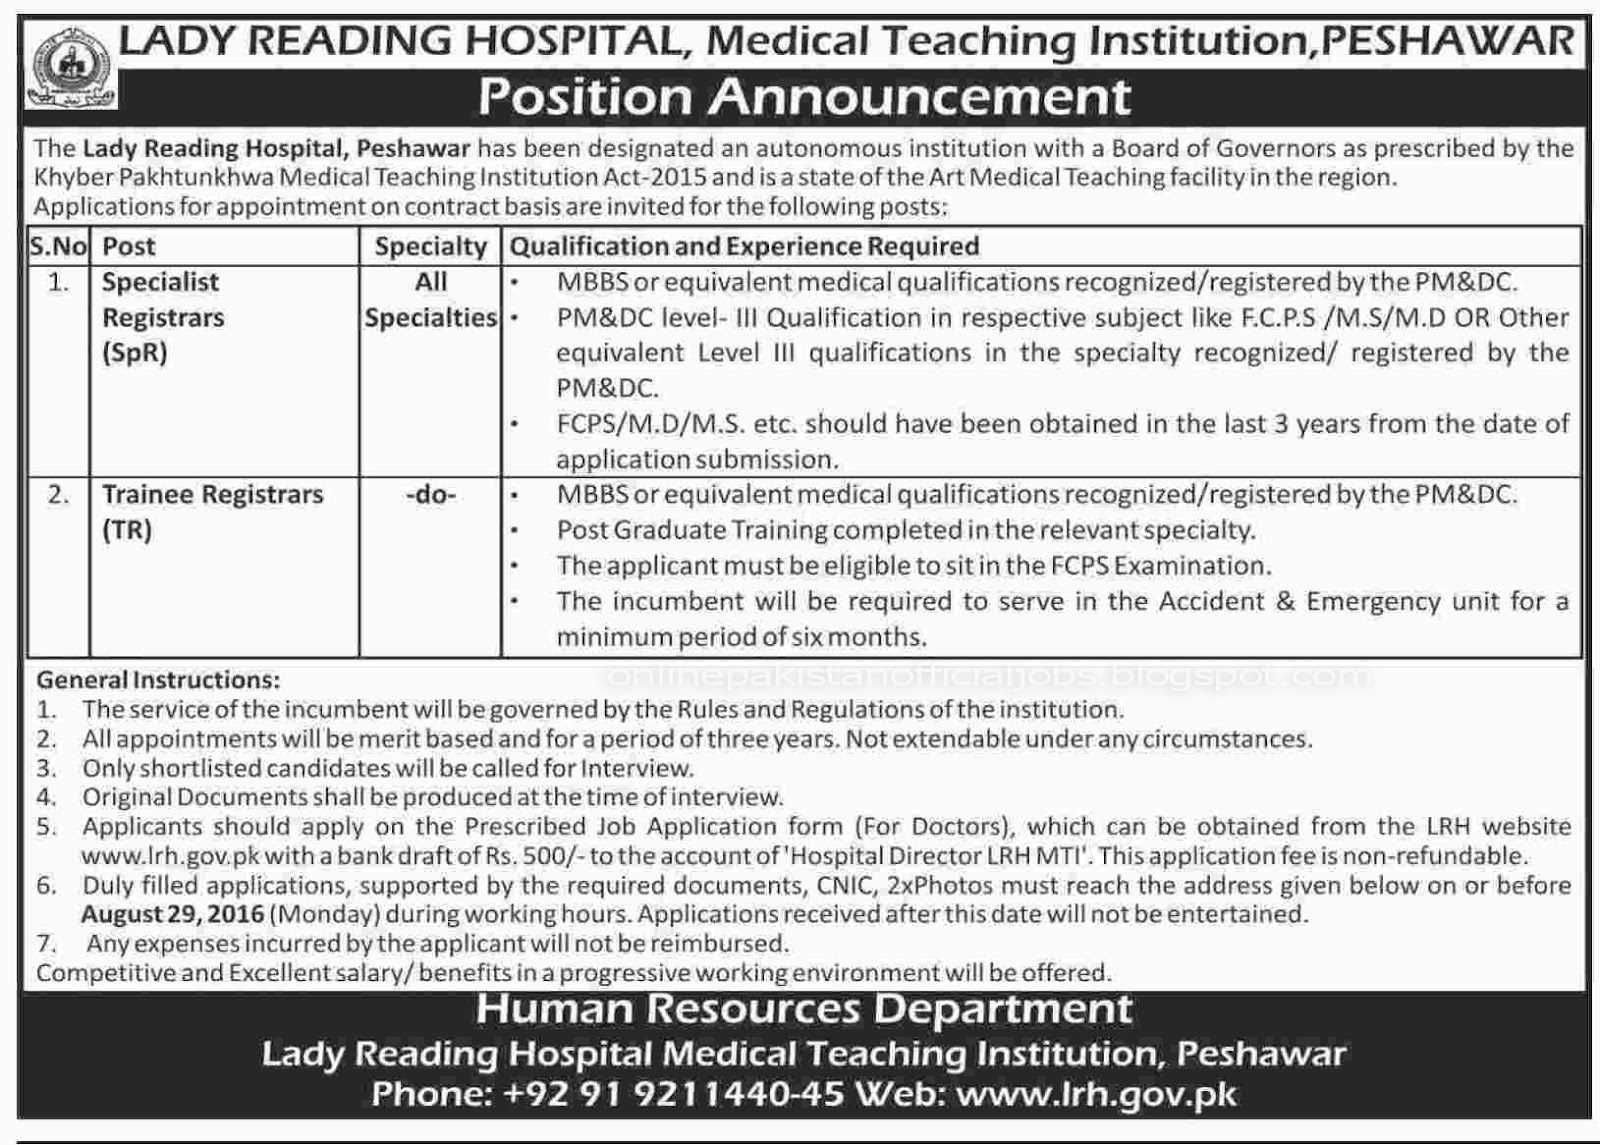 Lady Reading Hospital Peshawar jobs 2016